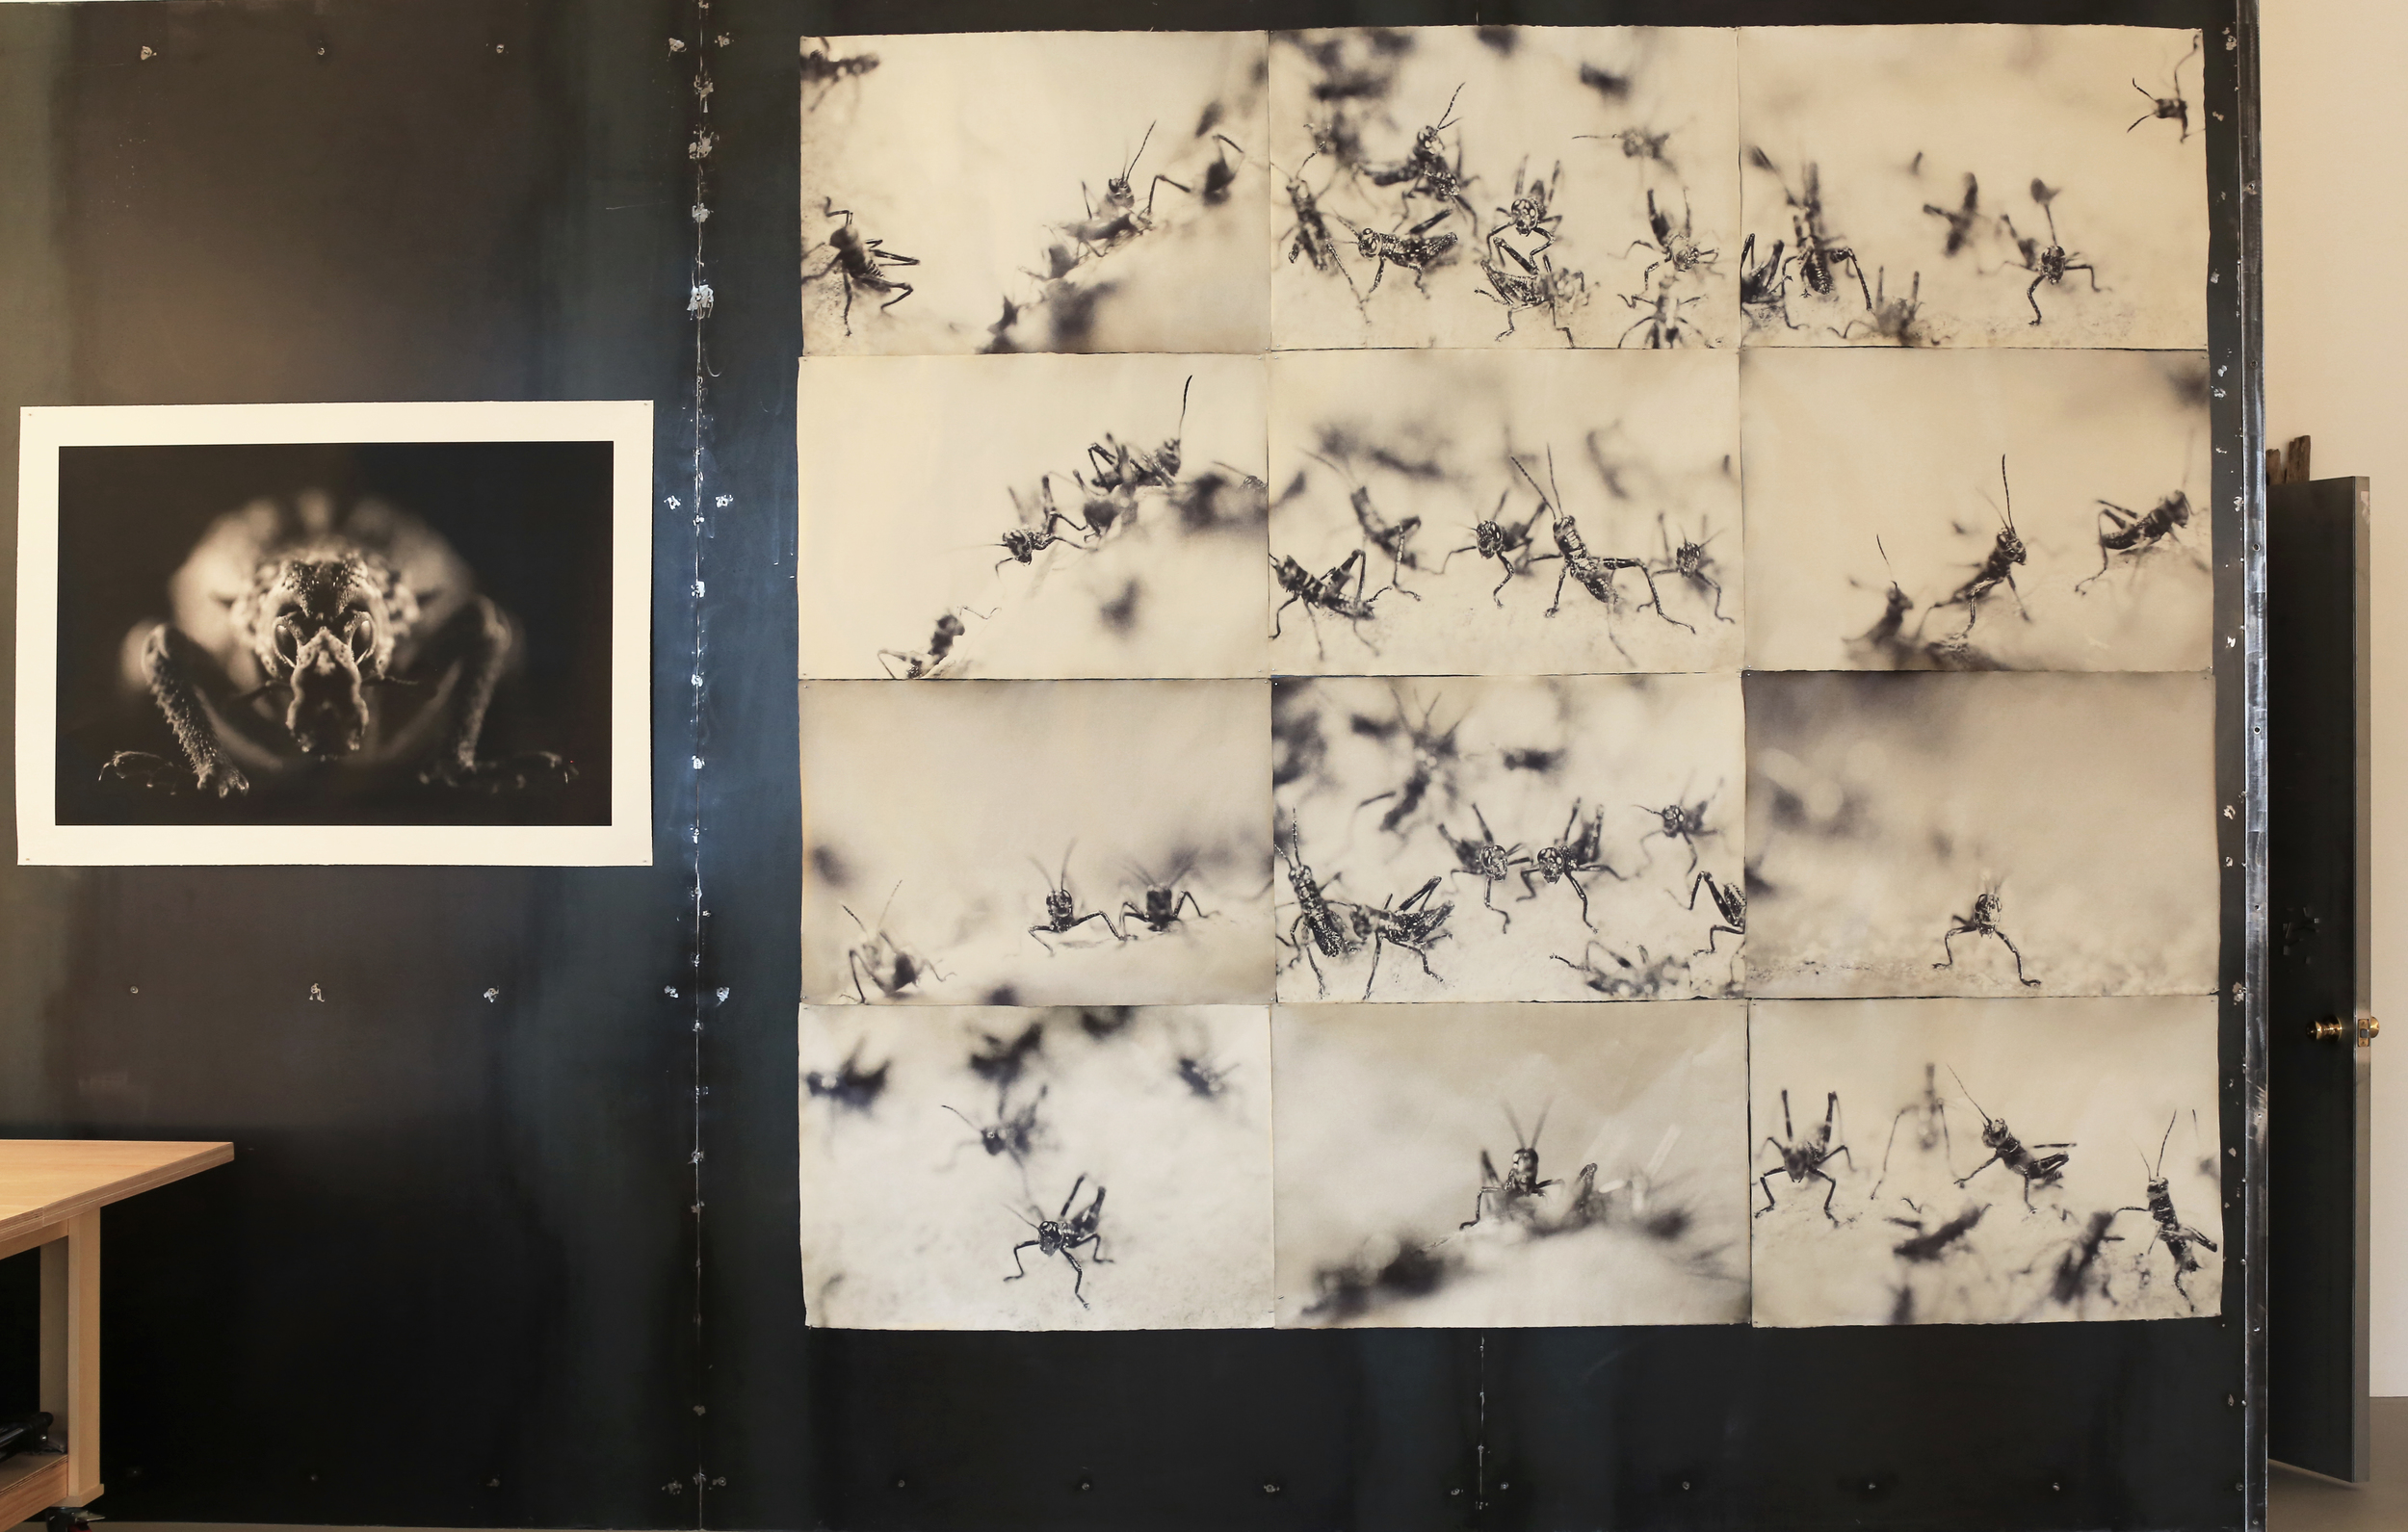 Grasshoppers,  Mana Fine Art, Jersey City.  Iris prints on twelve sheets of handmade Japanese gampi coated in natural beeswax, 111 x 100 inches